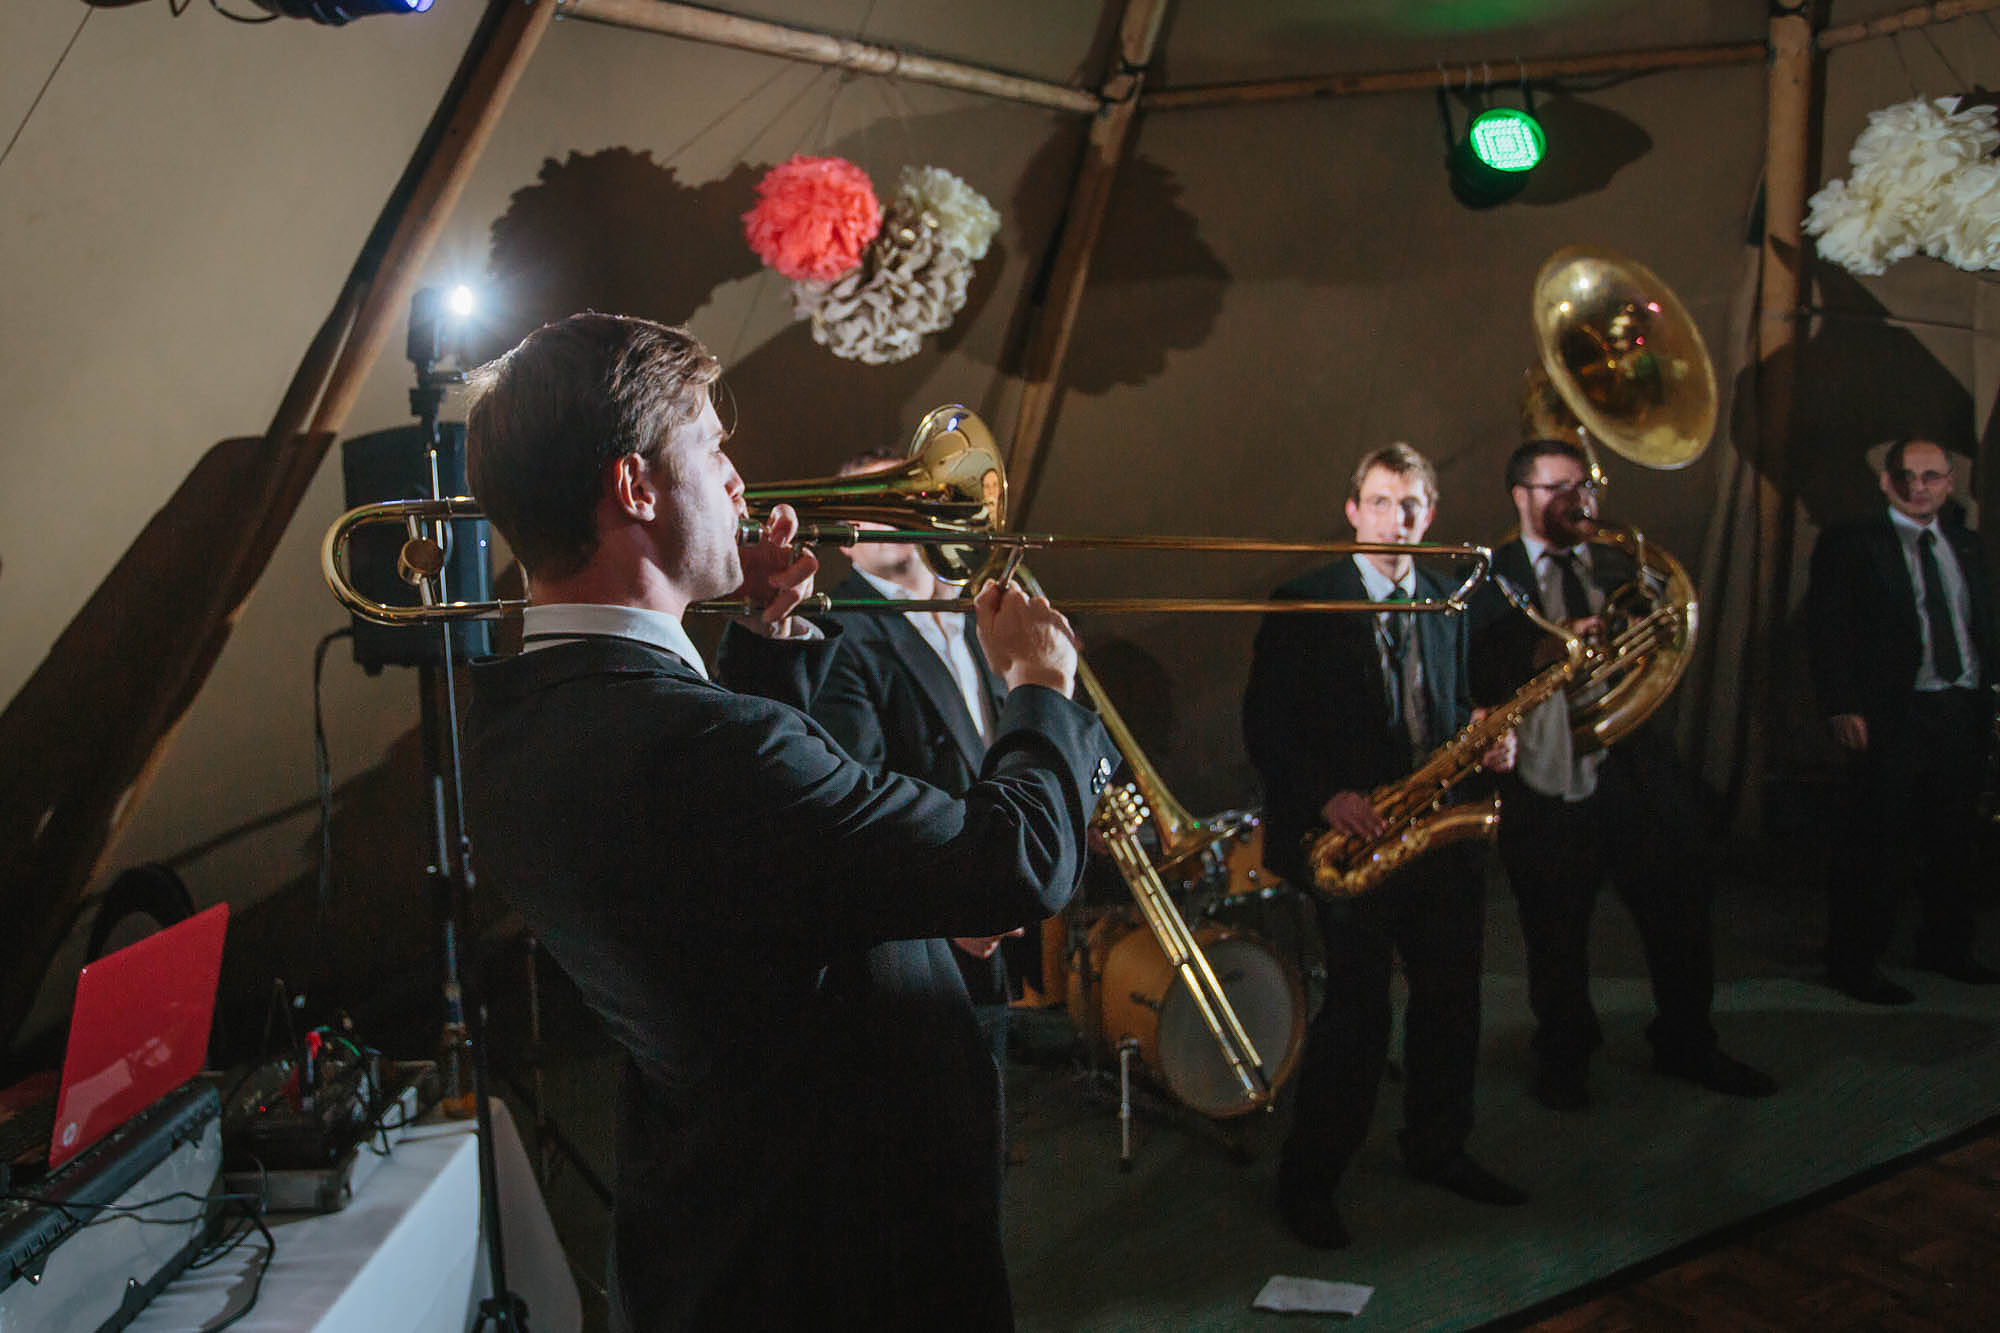 Brass band performing at a Yorkshire wedding